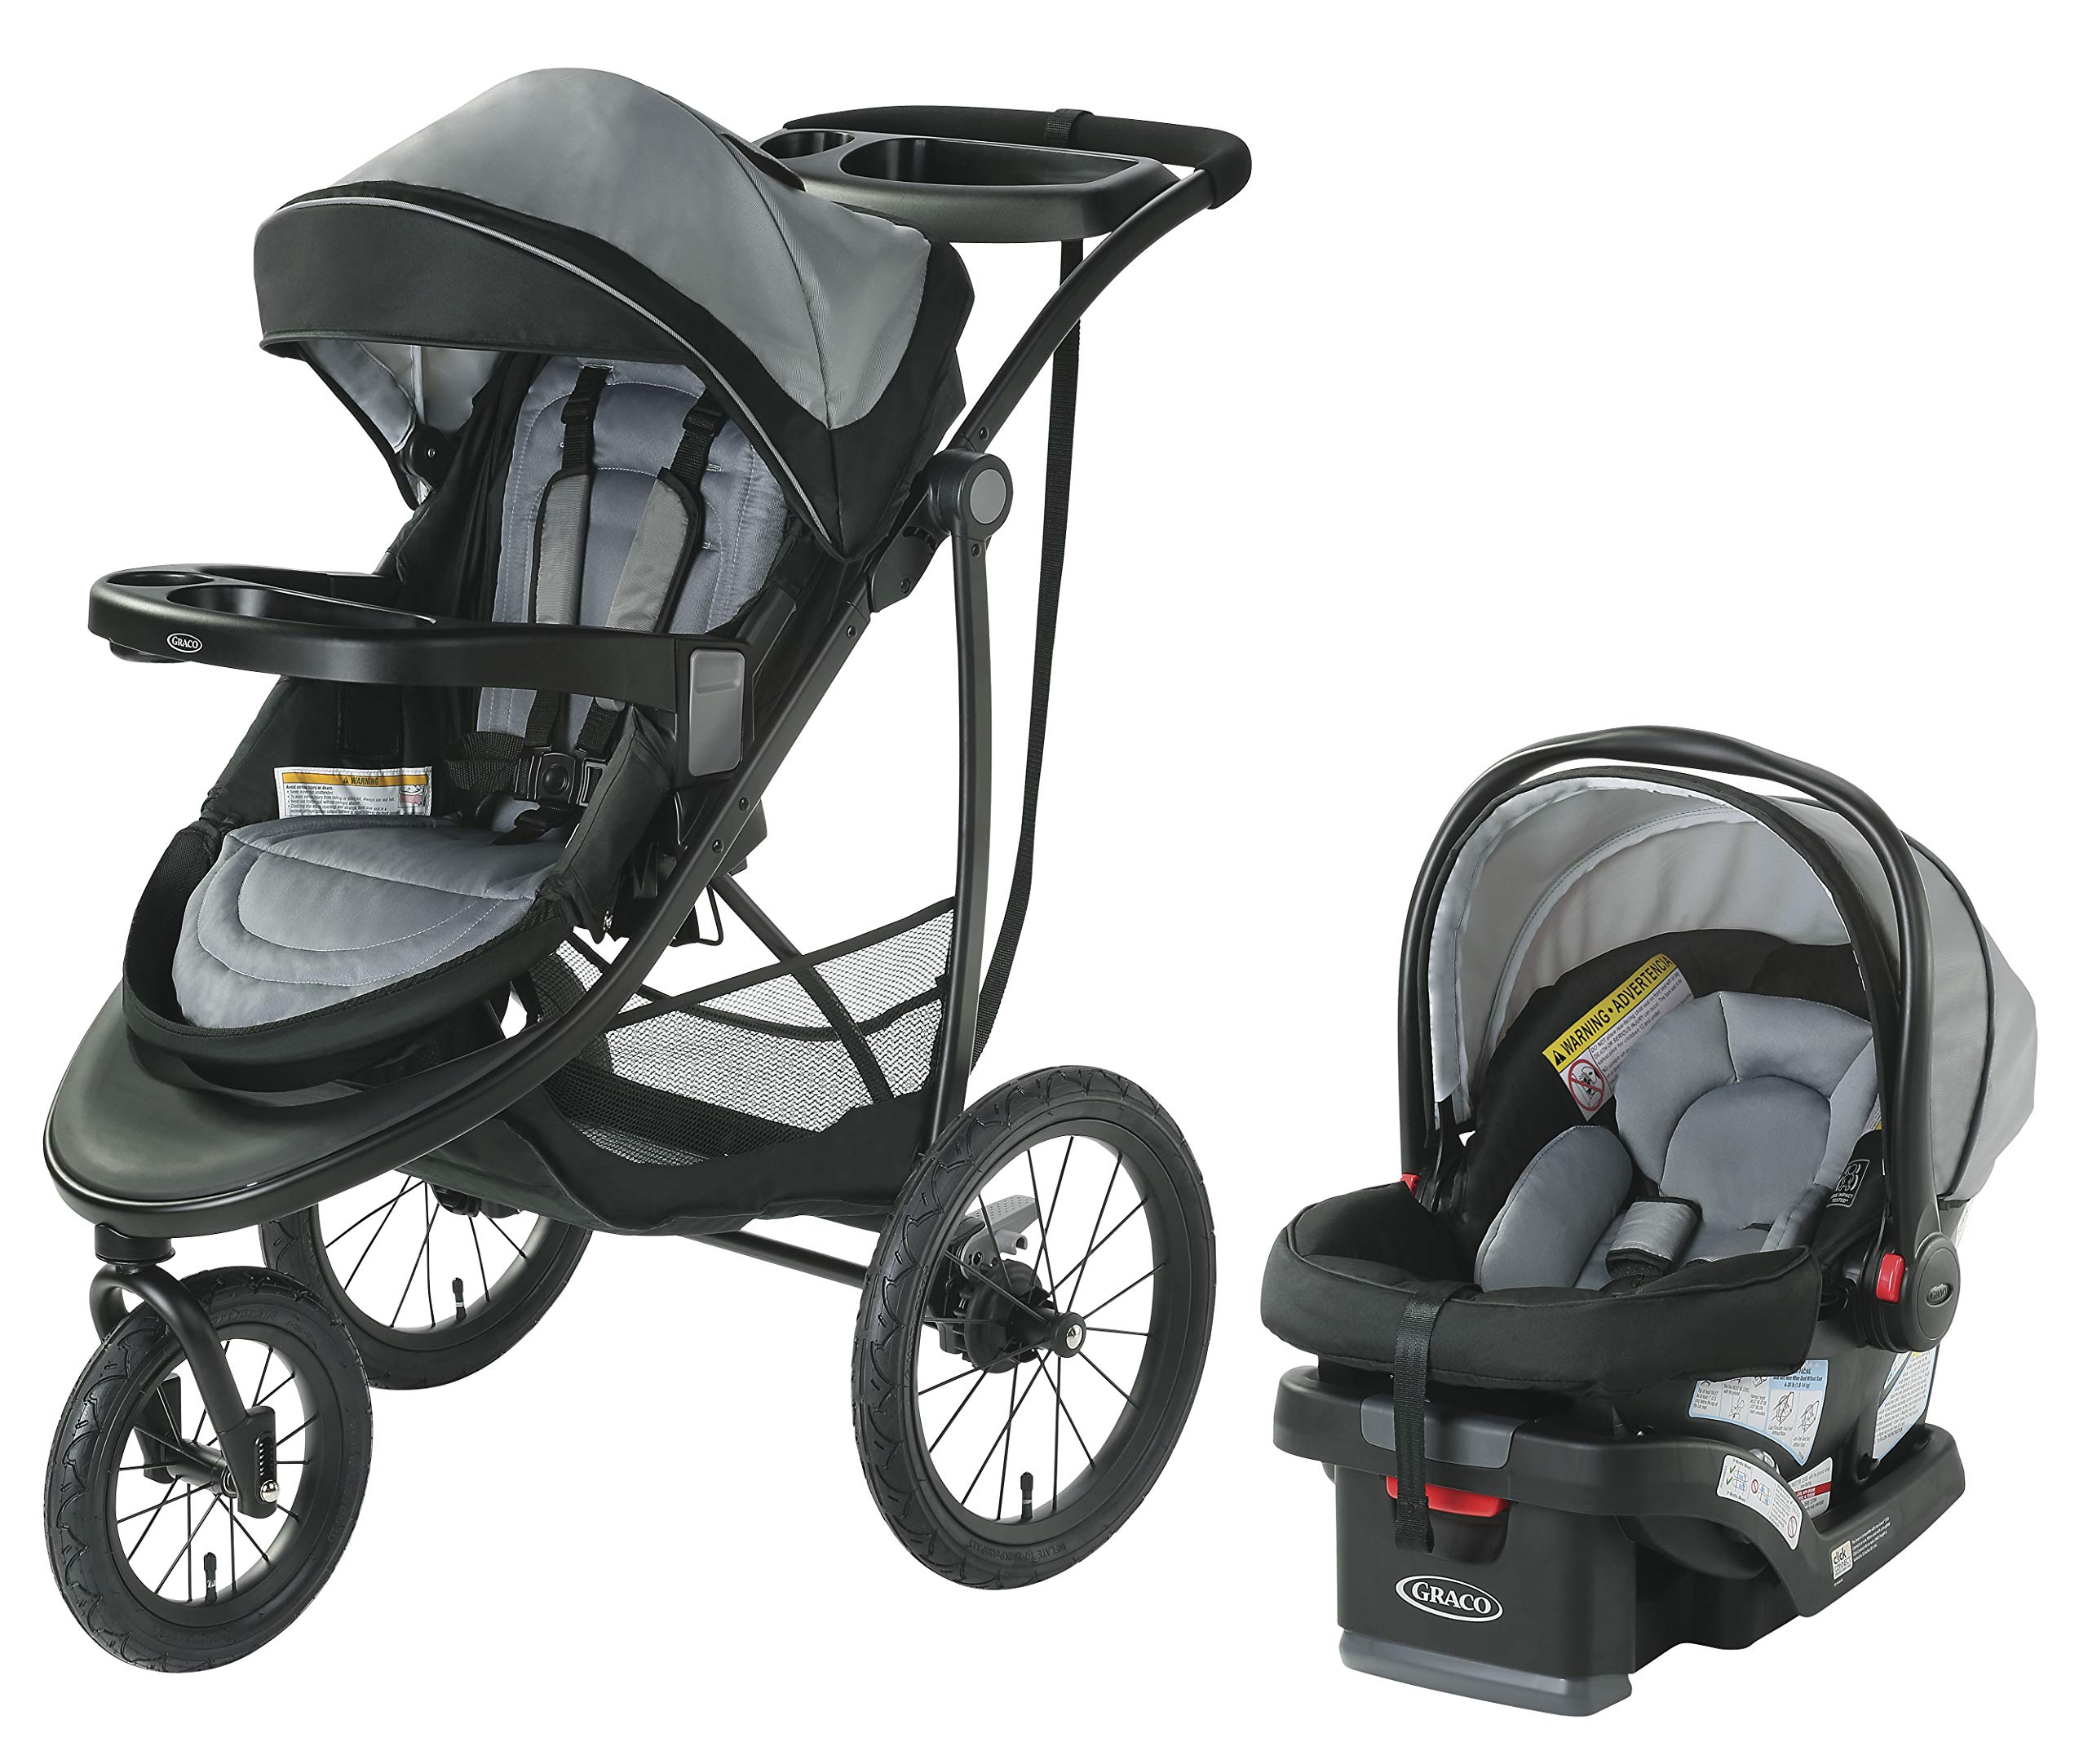 Graco Modes Jogger SE Travel System | Includes Modes Jogging Stroller and SnugRide SnugLock 30 Infant Car Seat, Codey by Graco